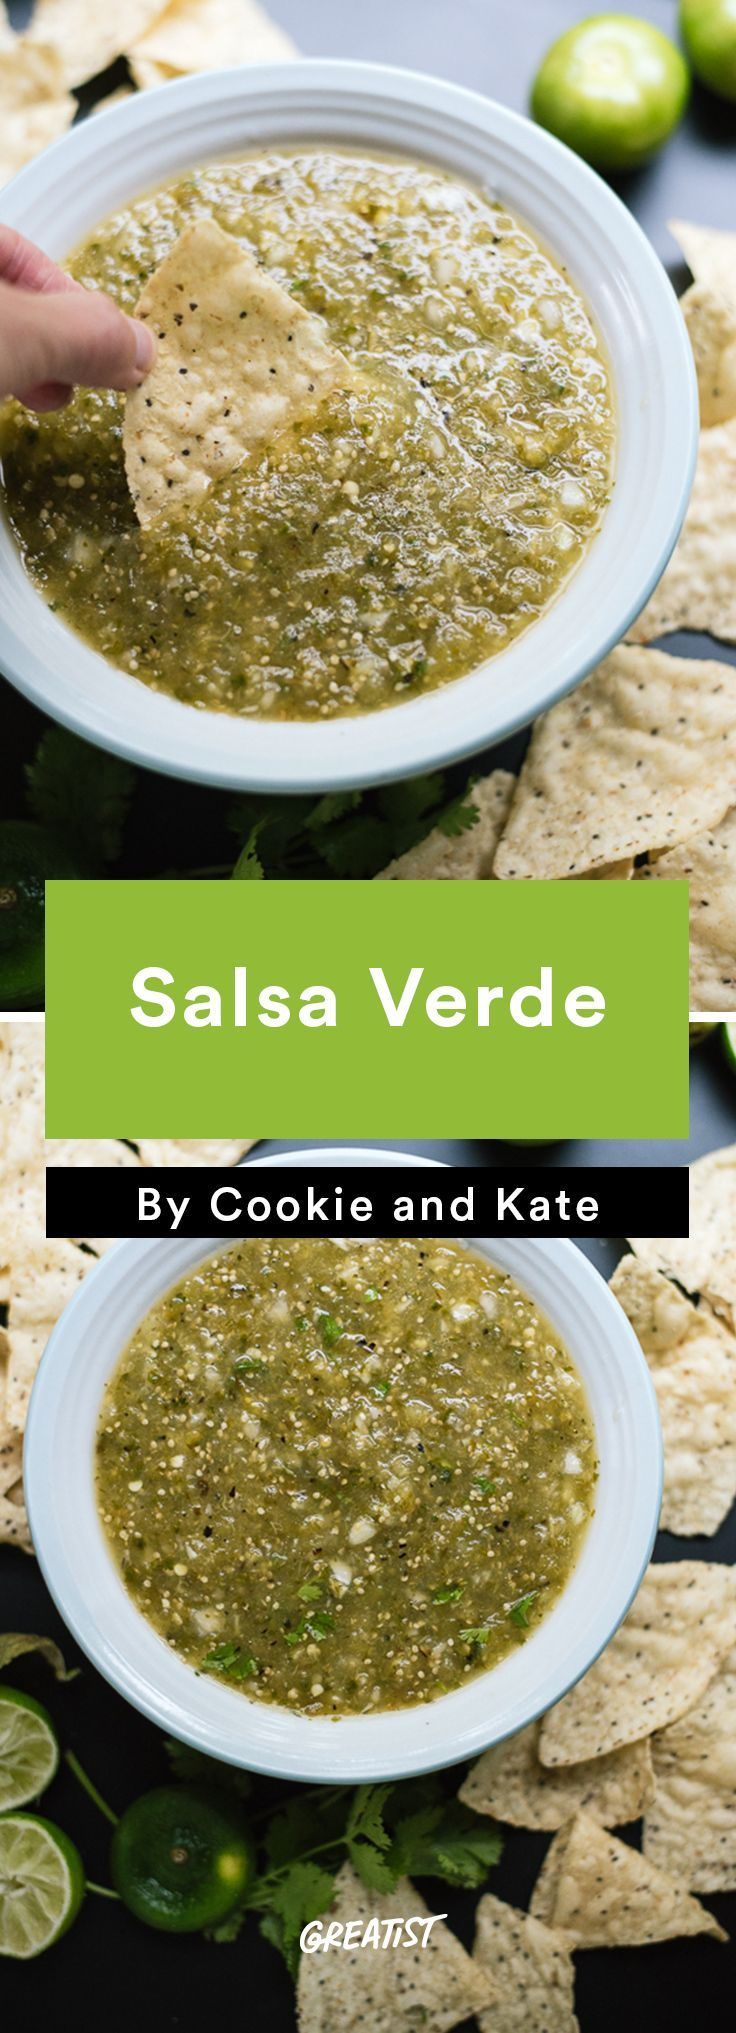 7. Salsa Verde #healthy #gameday #recipes http://greatist.com/eat/game-day-recipes-that-wont-leave-you-in-a-food-coma